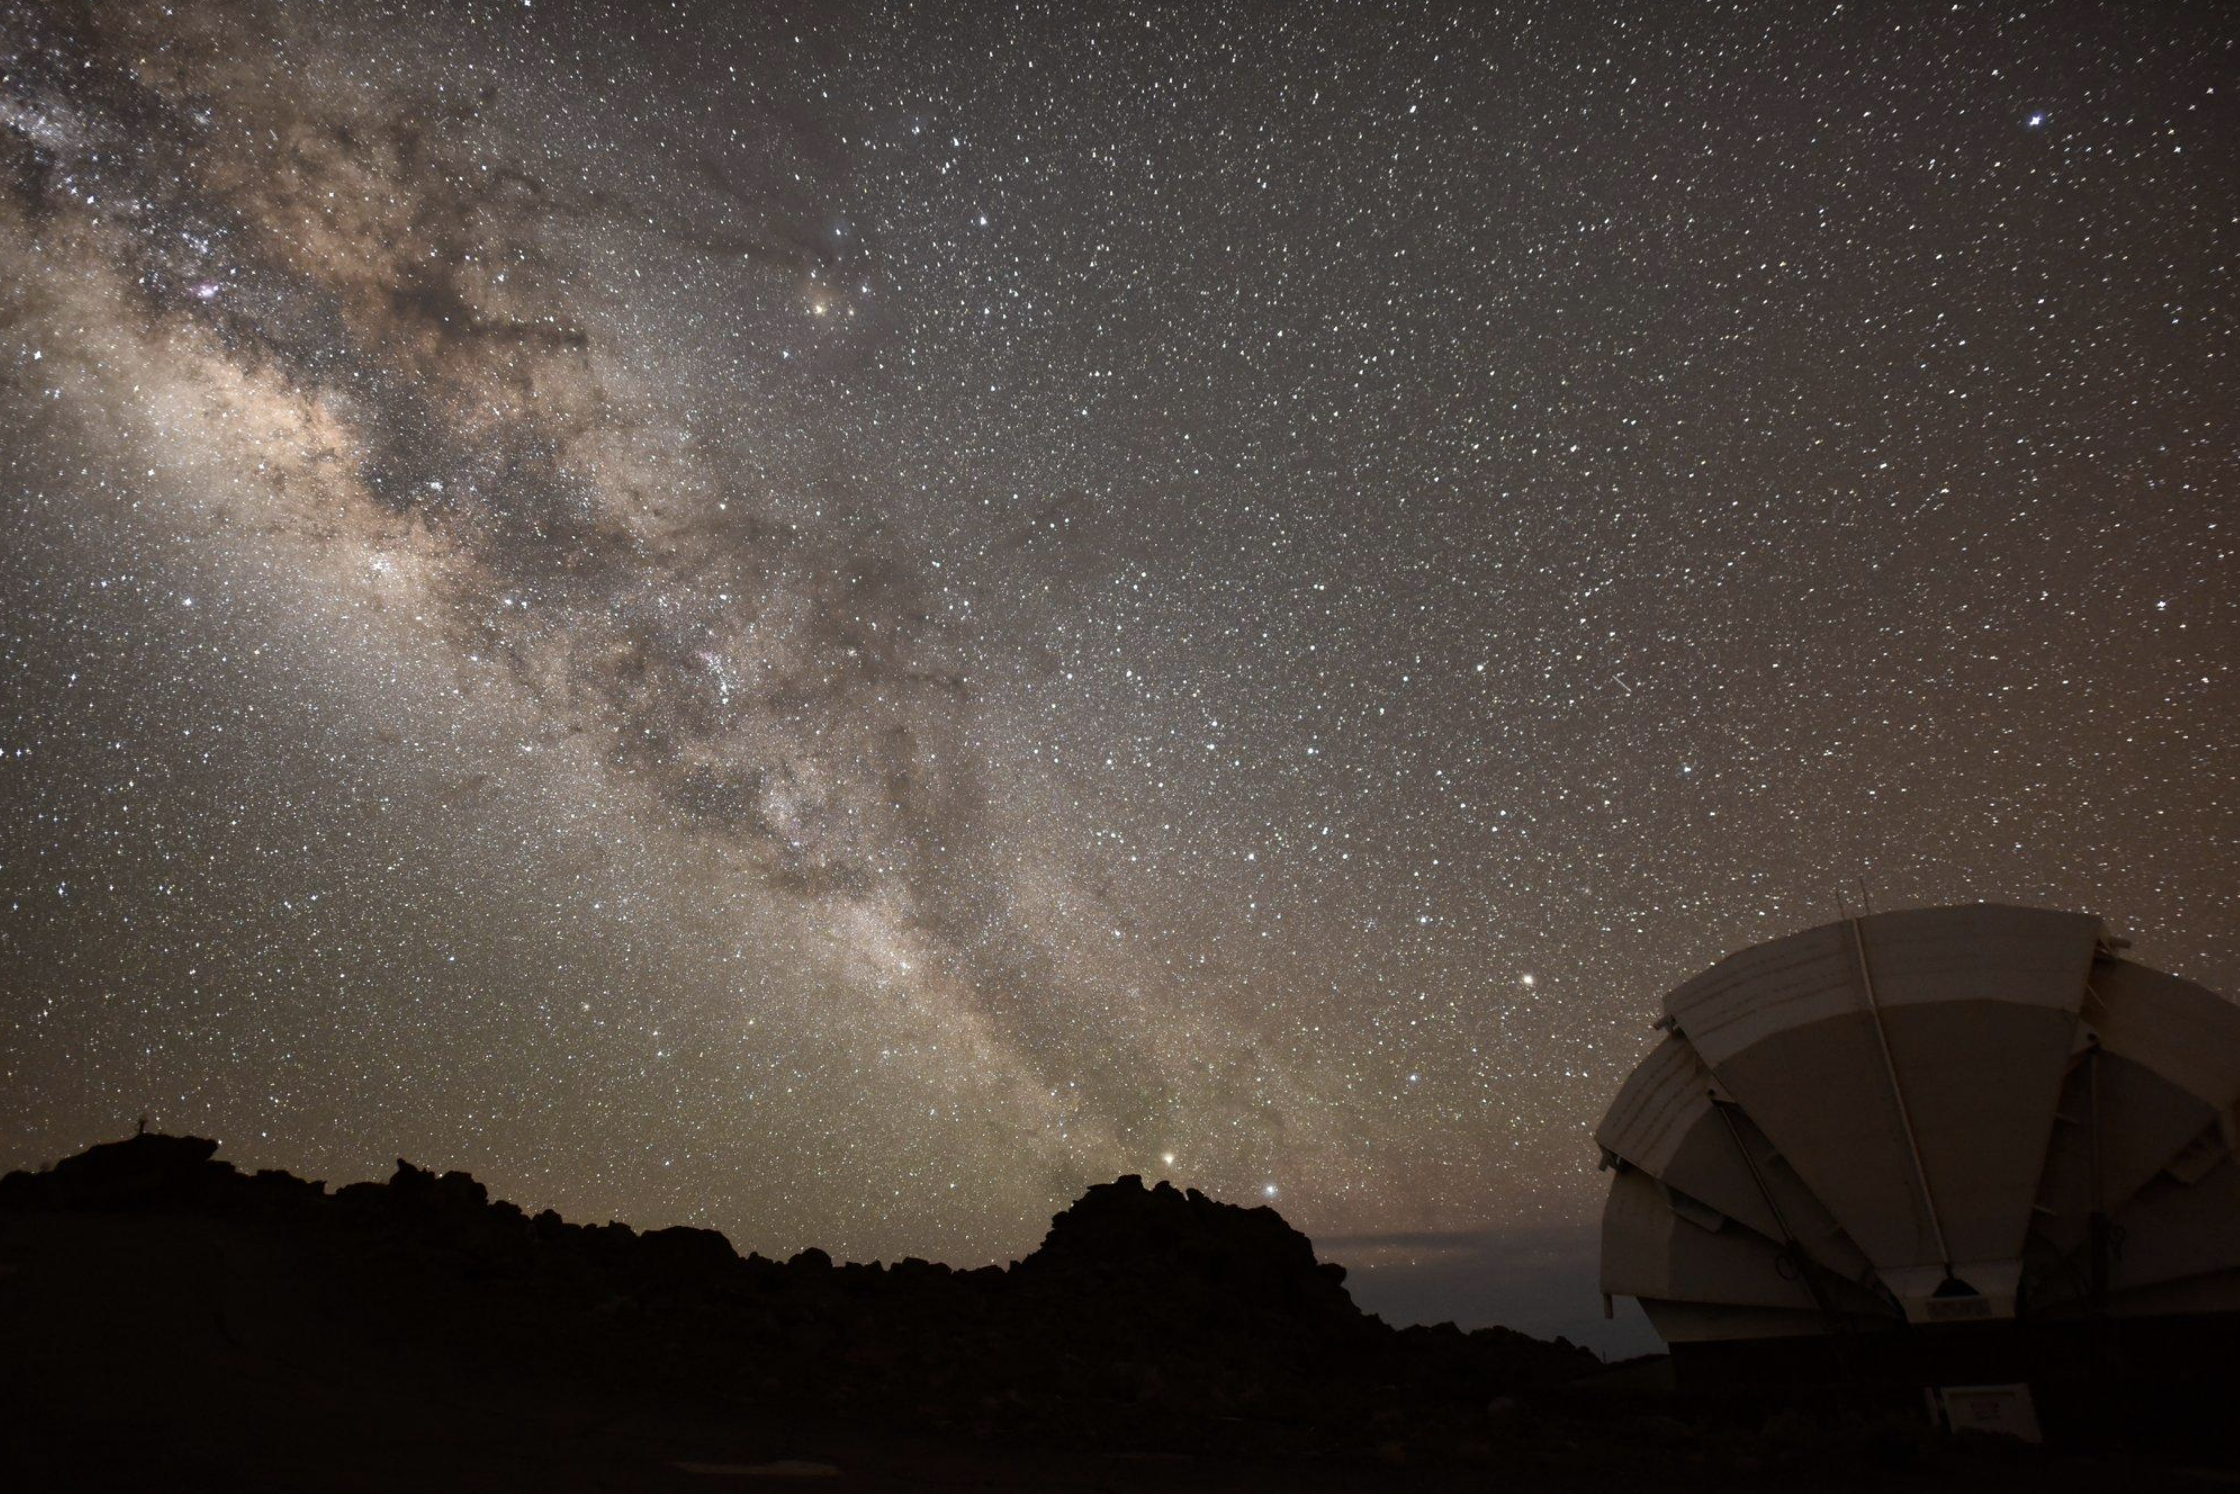 Call for Guided Astronomy and Hiking Tour Applicants in Haleakalā National Park